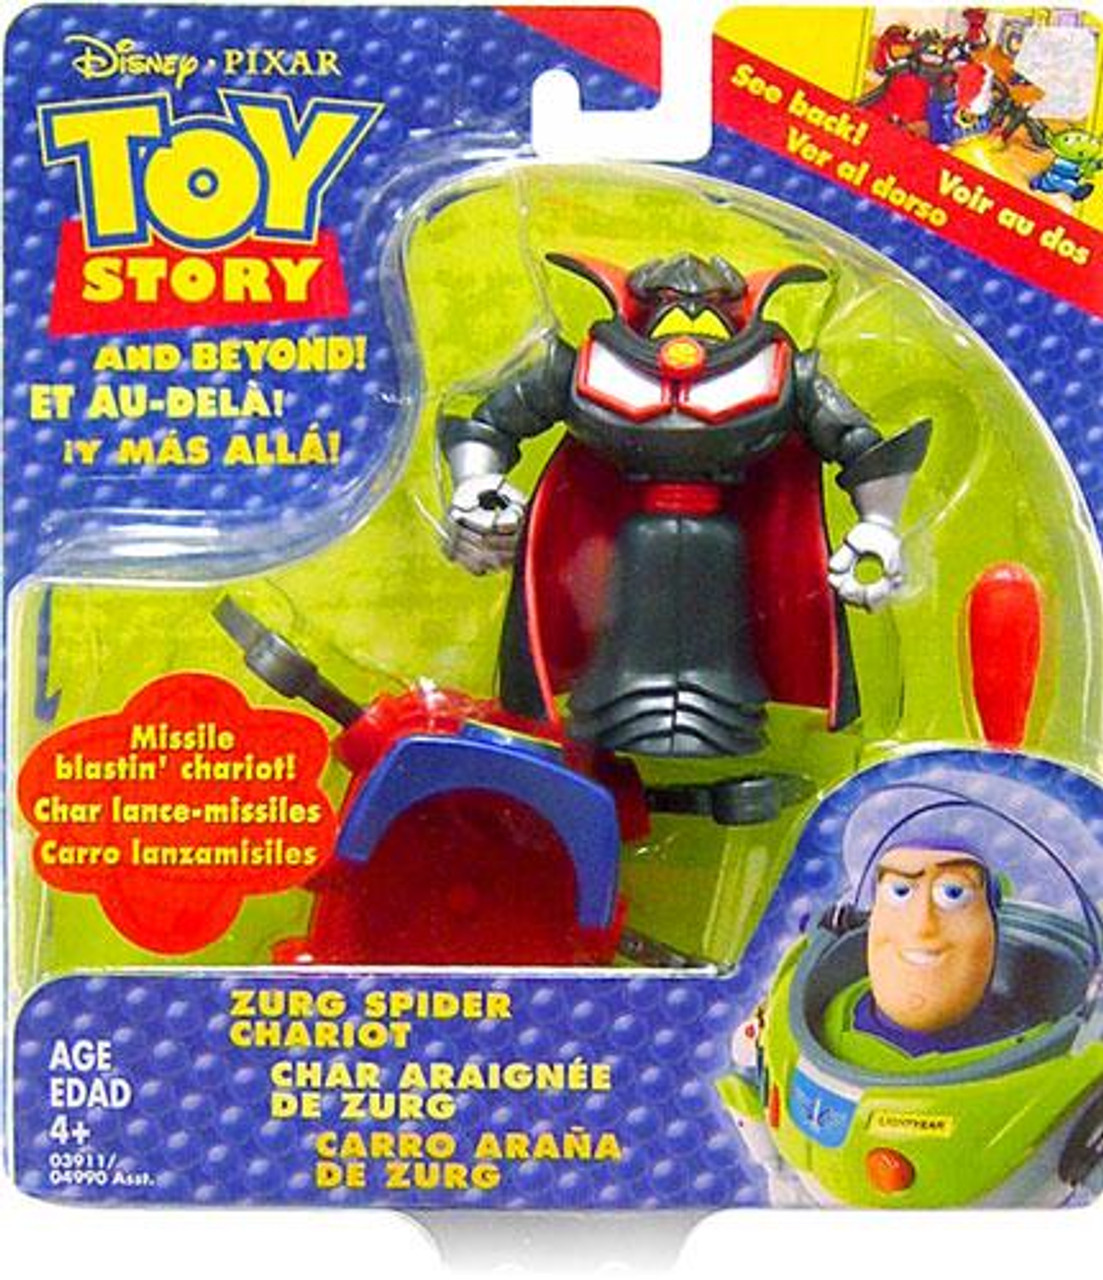 Toy Story and Beyond Zurg Spider Chariot Mini Figure Set